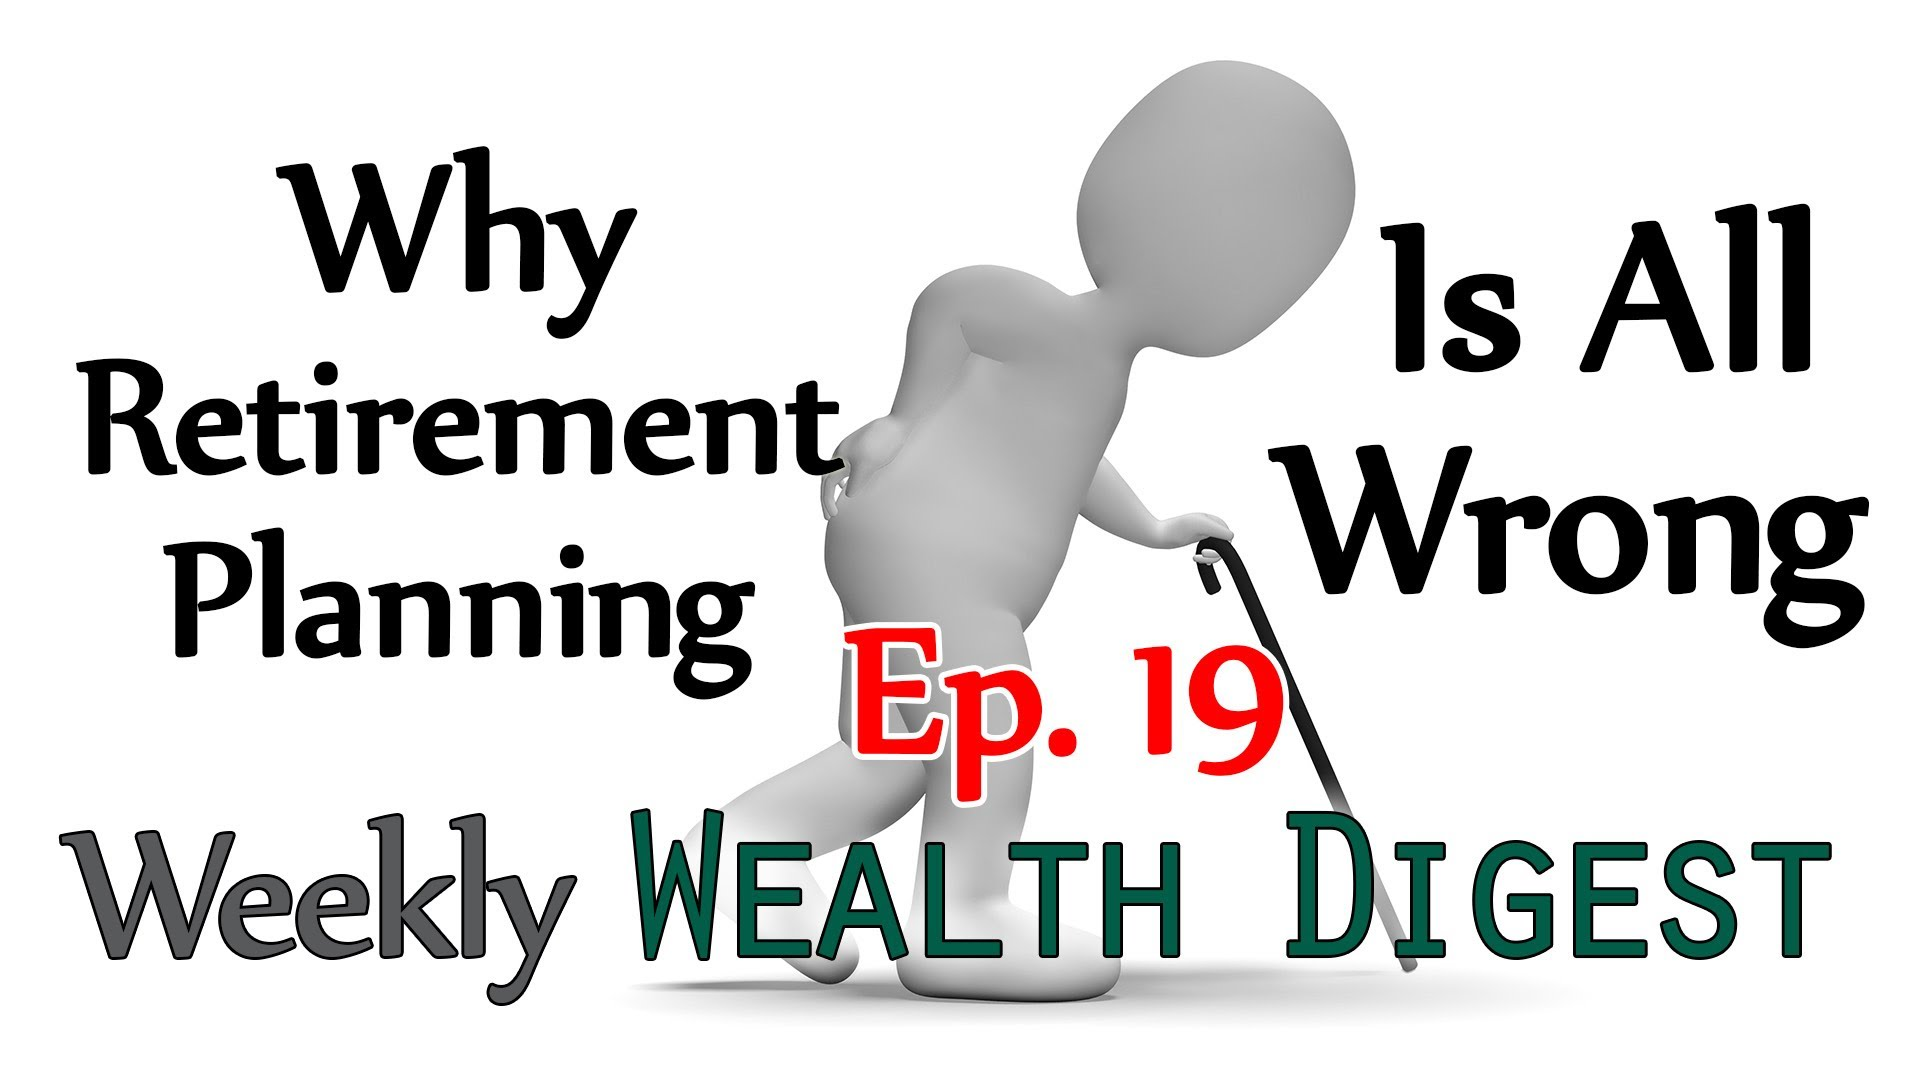 Why Retirement Planning is All Wrong